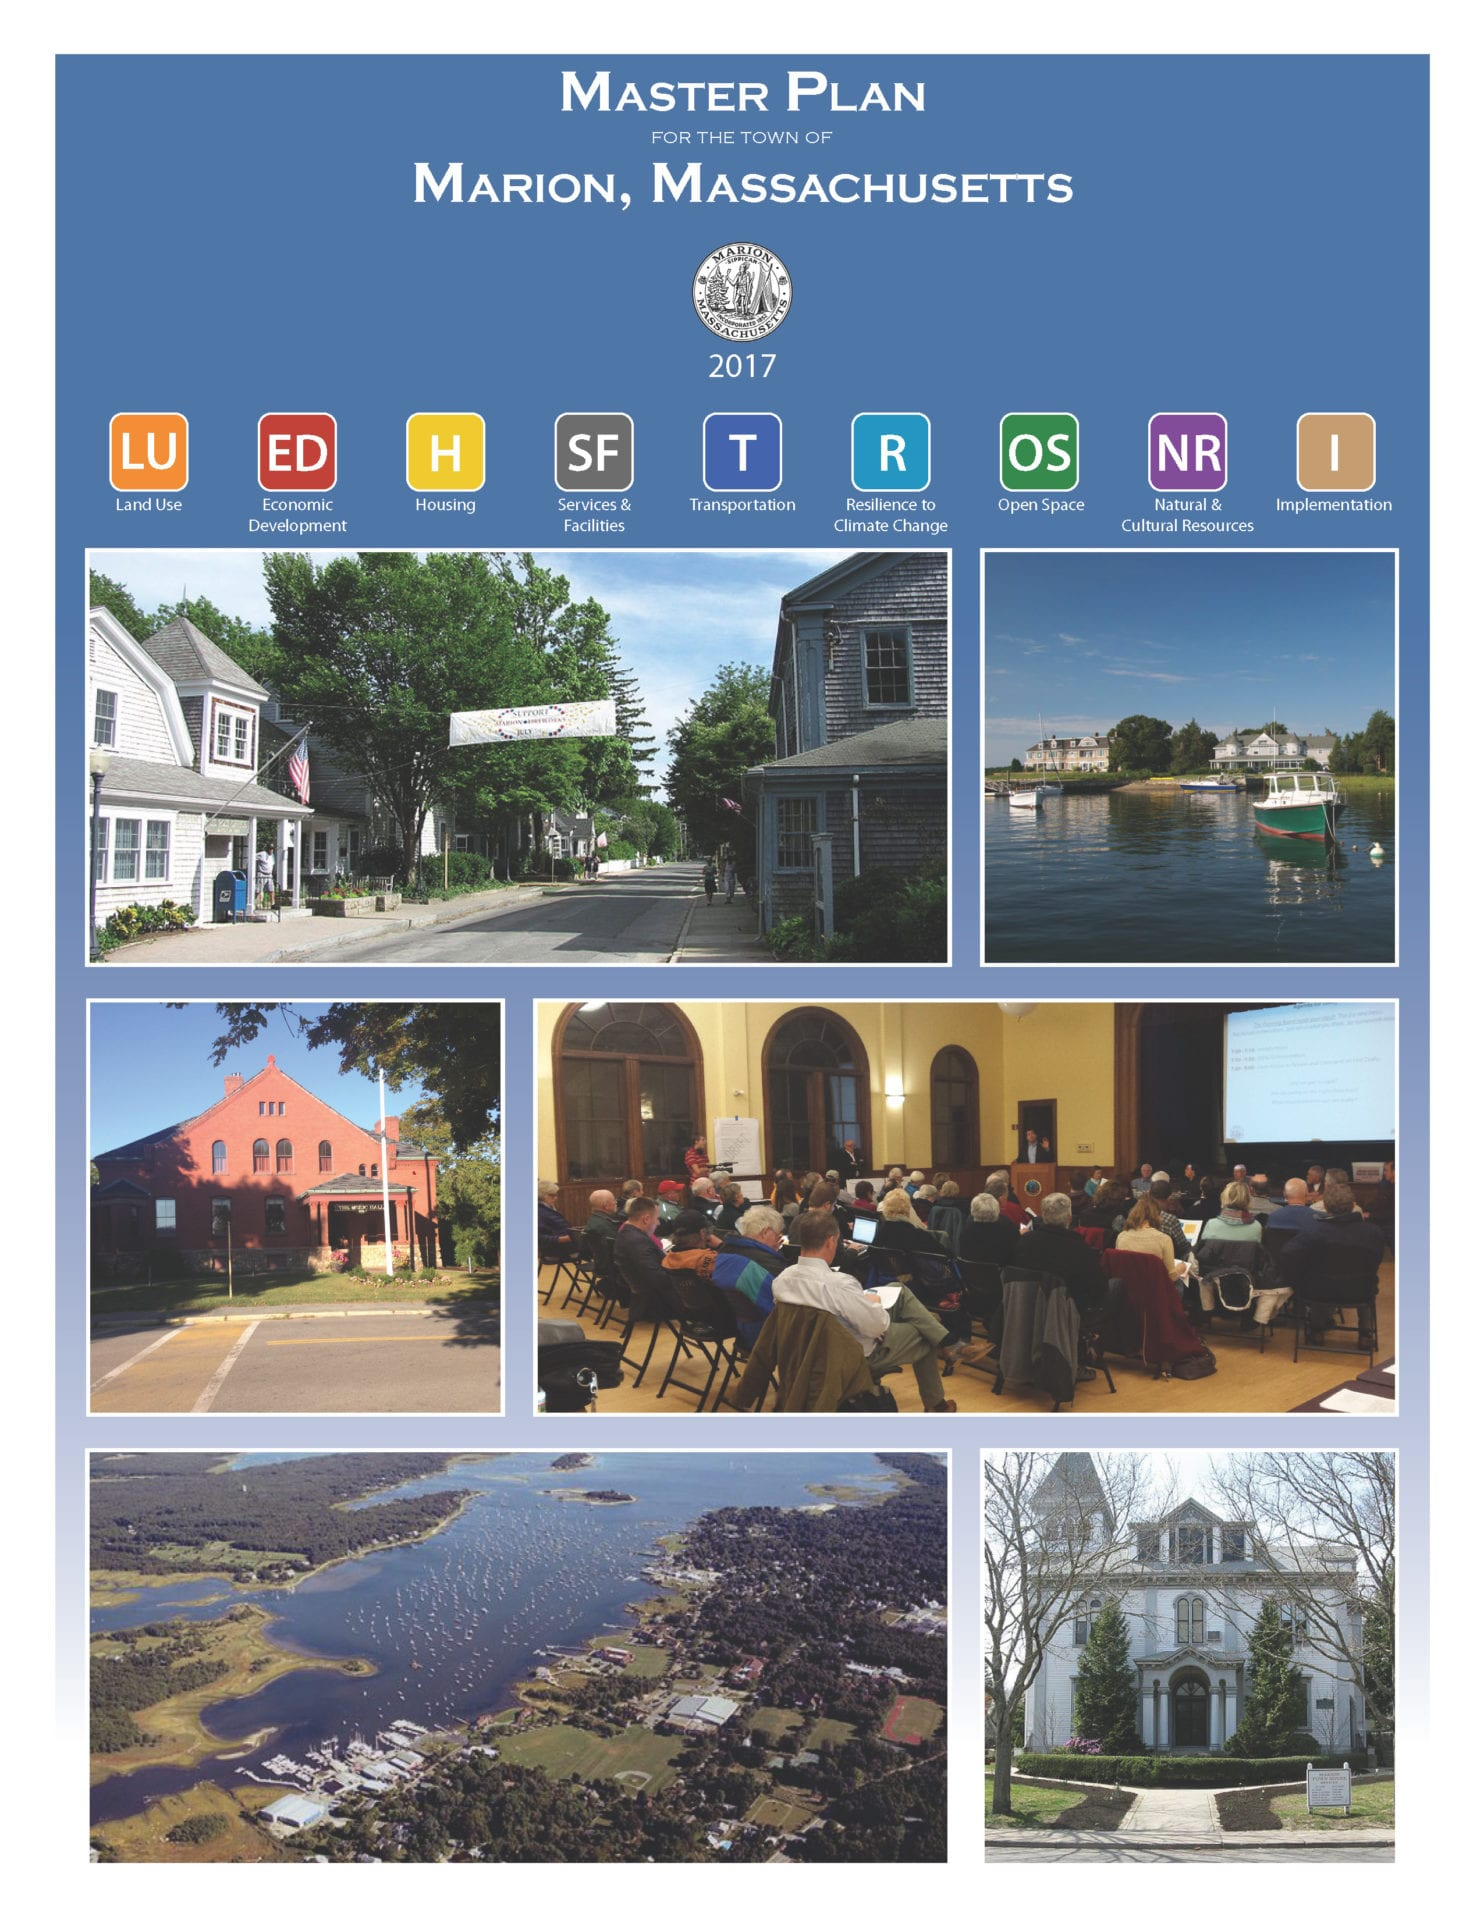 The cover of the 2017 Marion Master Plan.